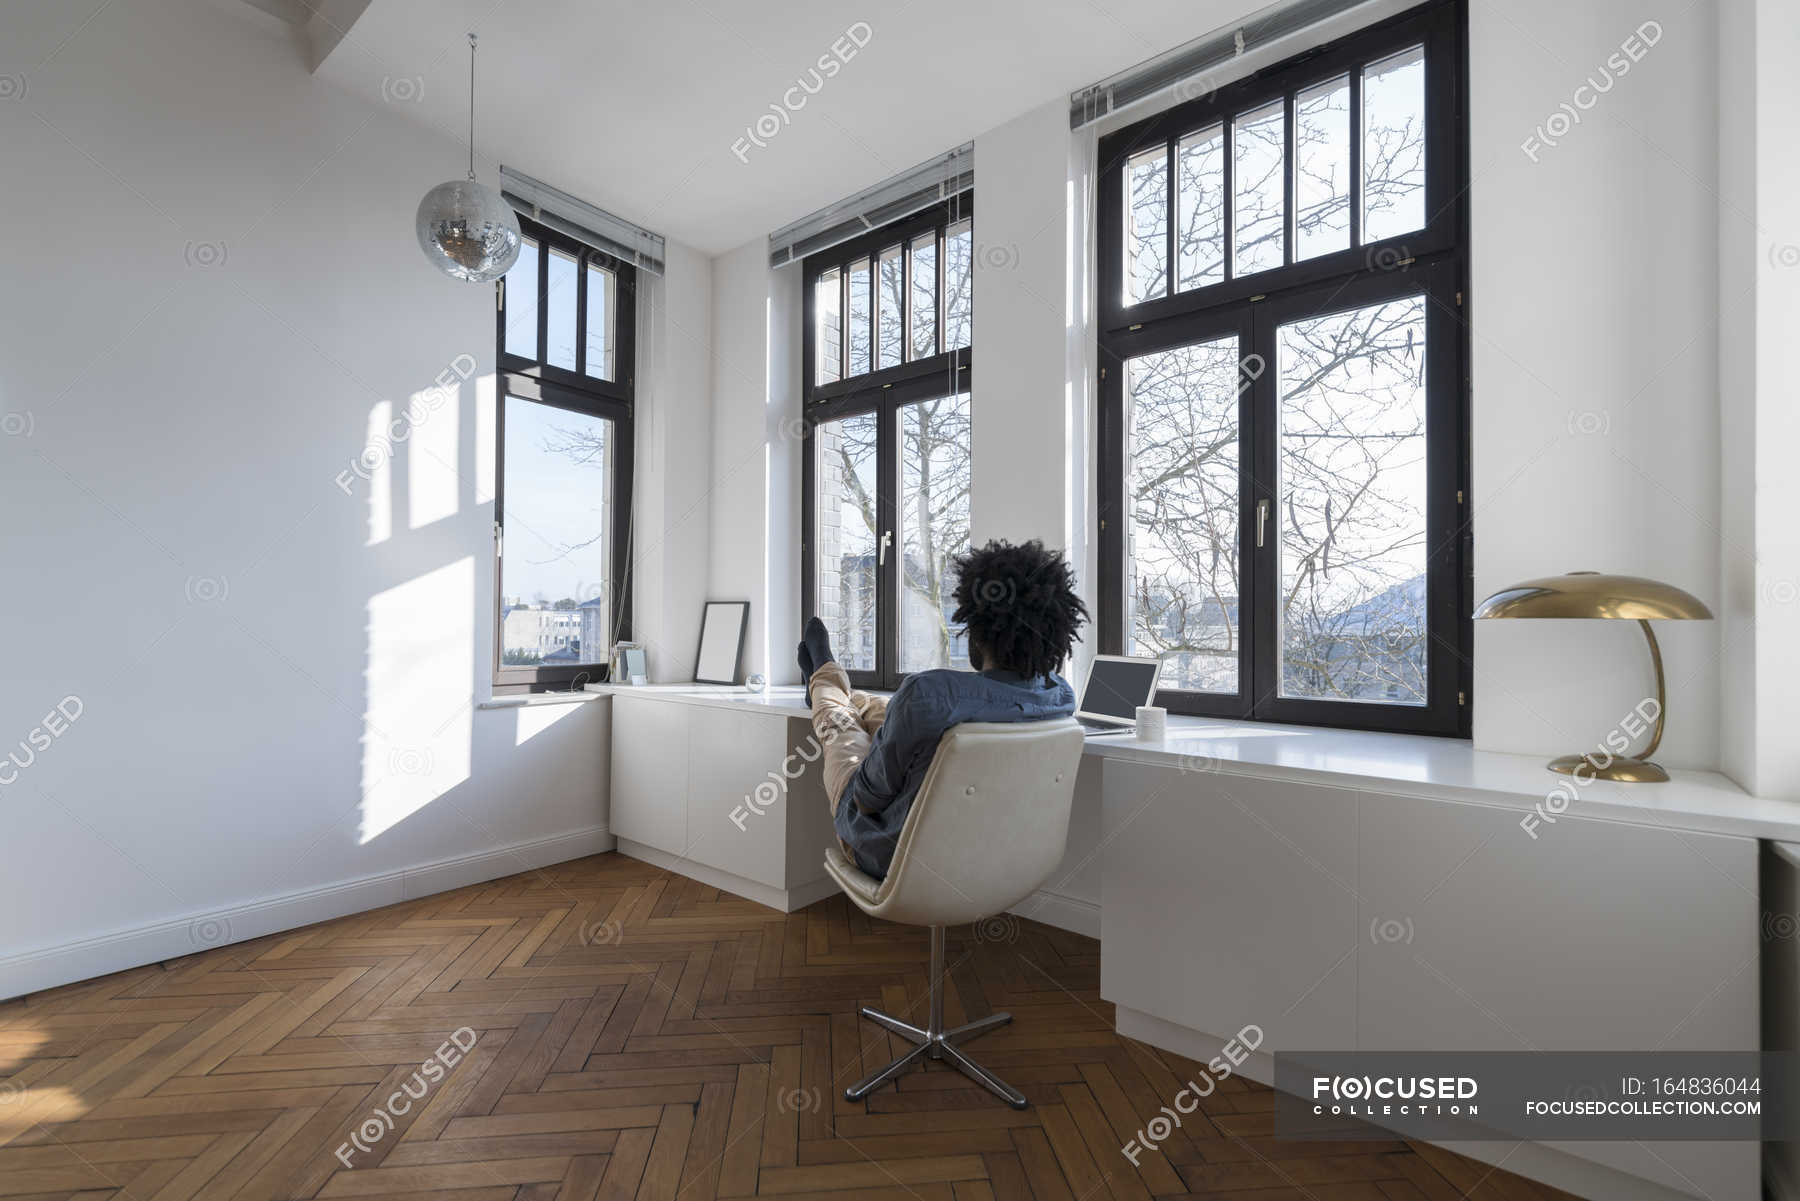 Man Sitting In Minimalist Empty Room Stock Photo